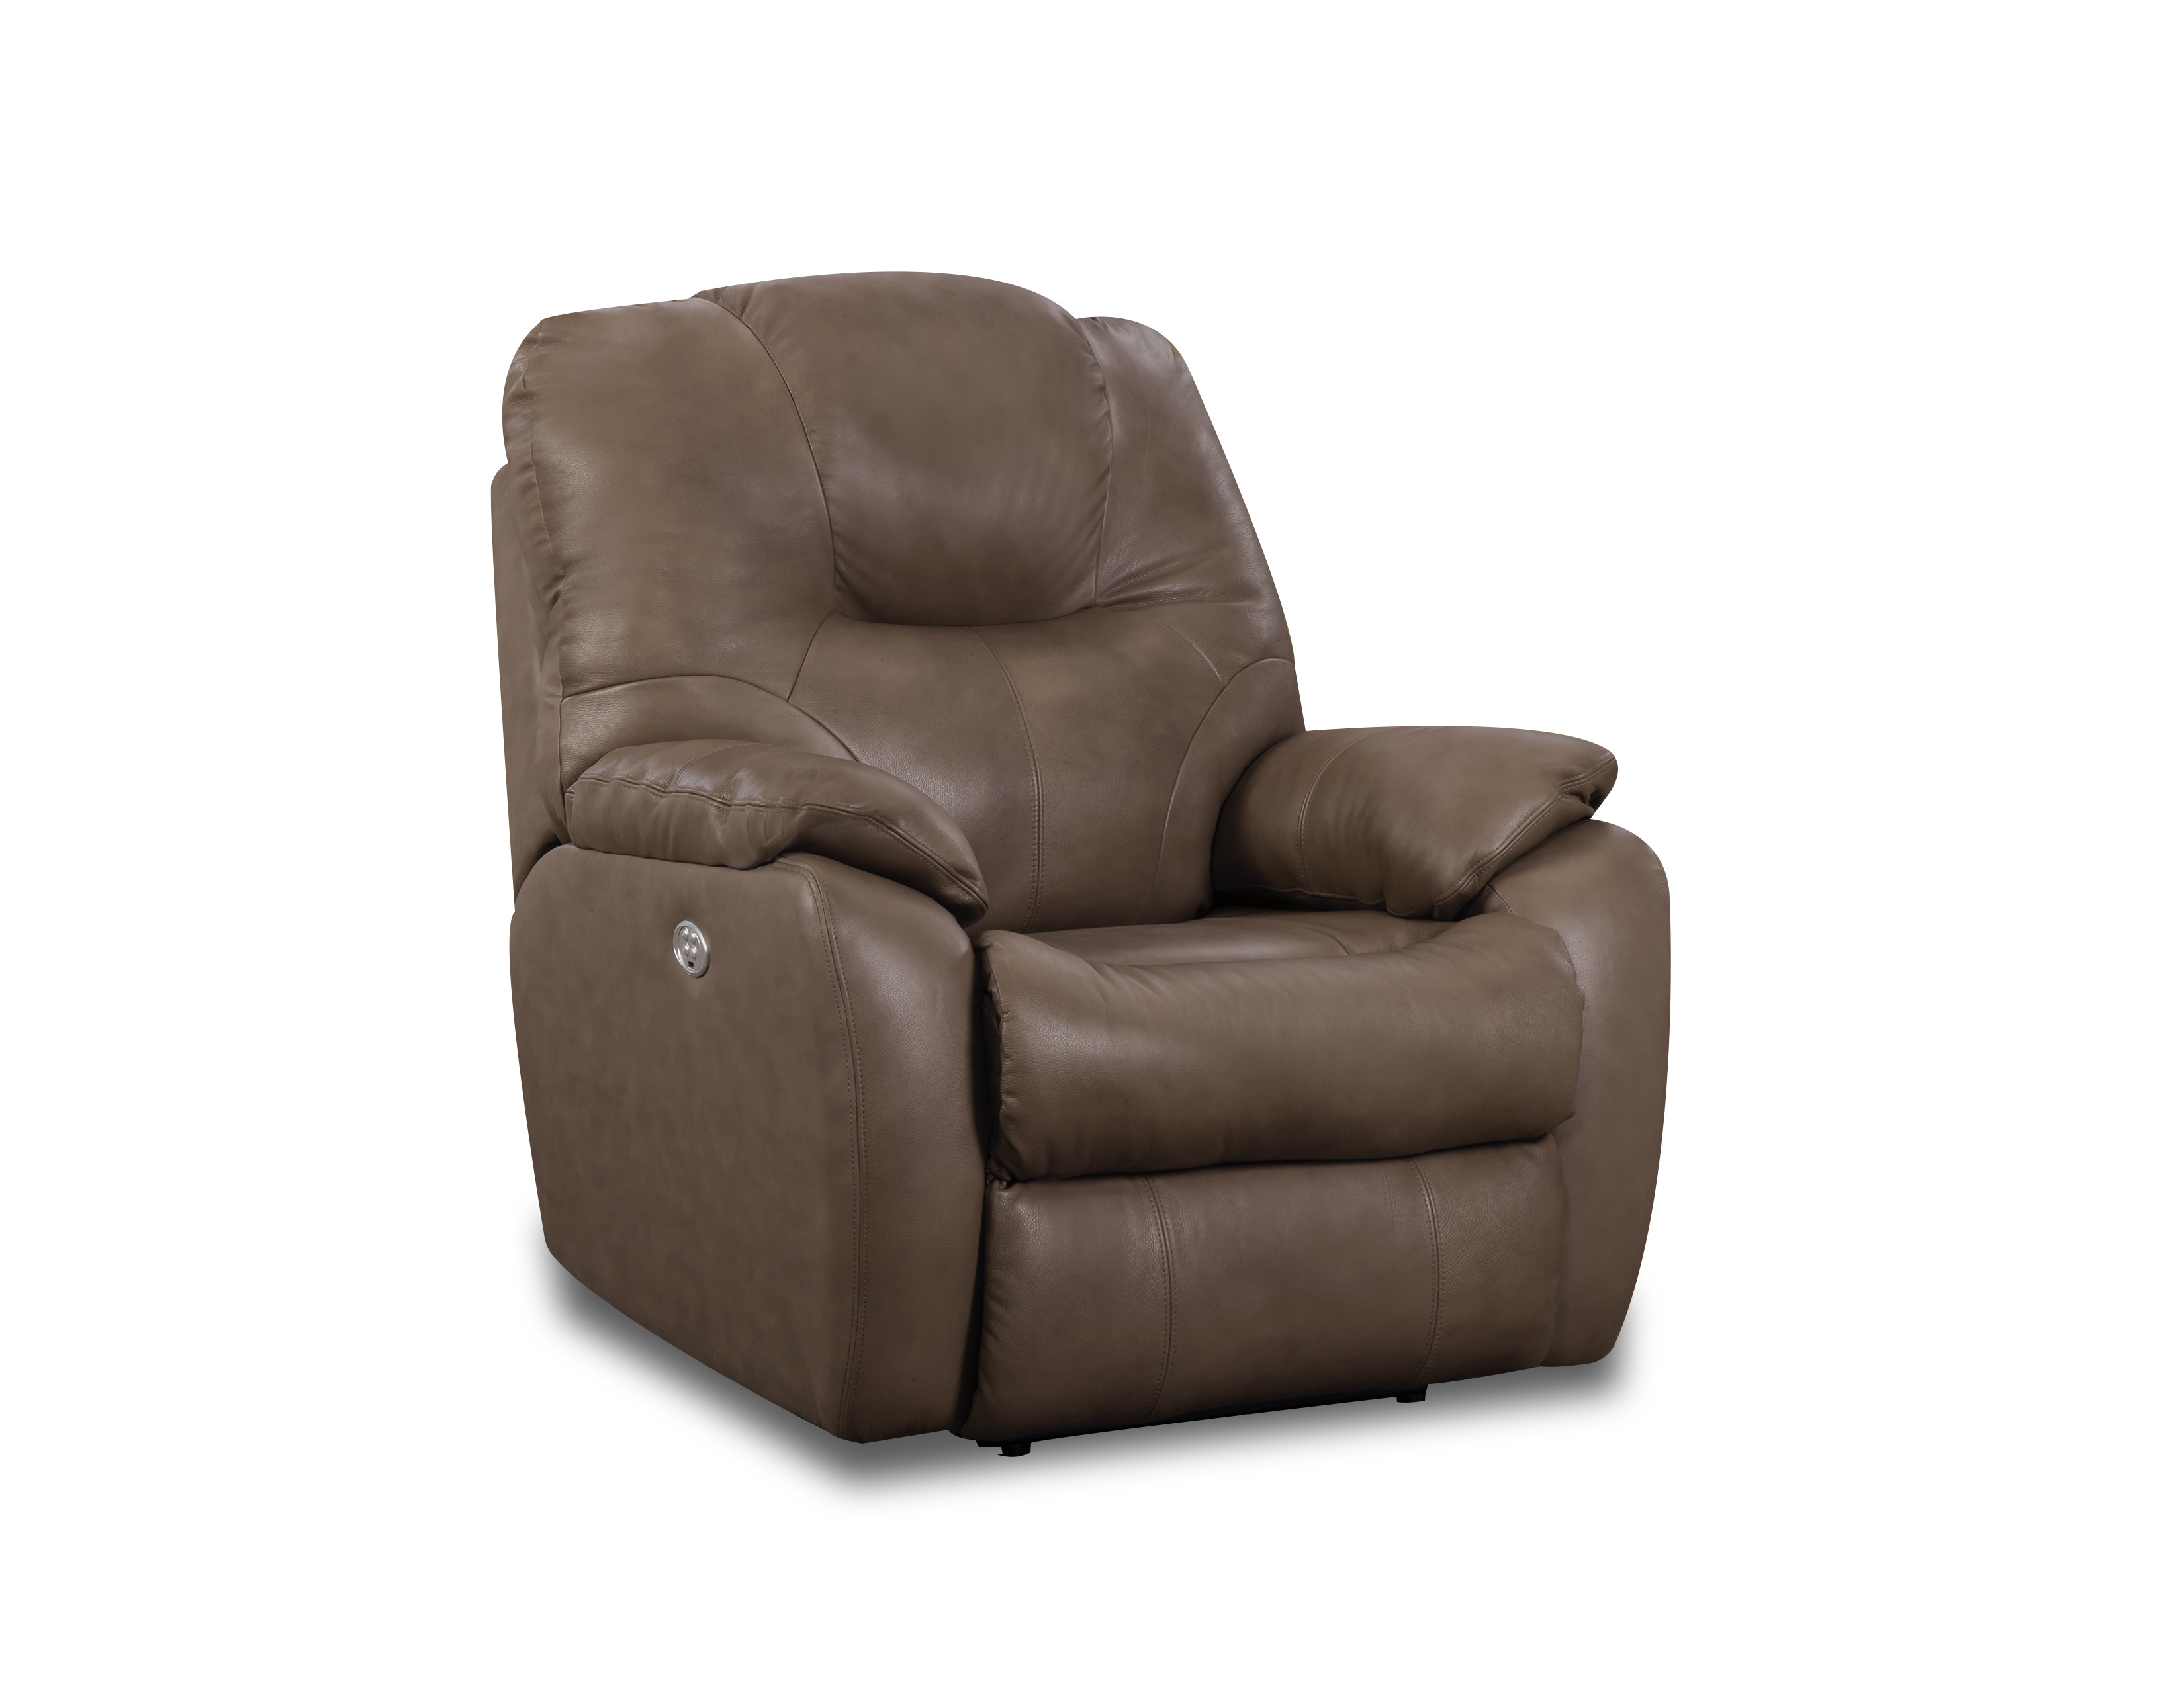 6838P-AVALON-IN-956-17-ST.-LAURENT-TAUPE-RECLINER-PU-SWP